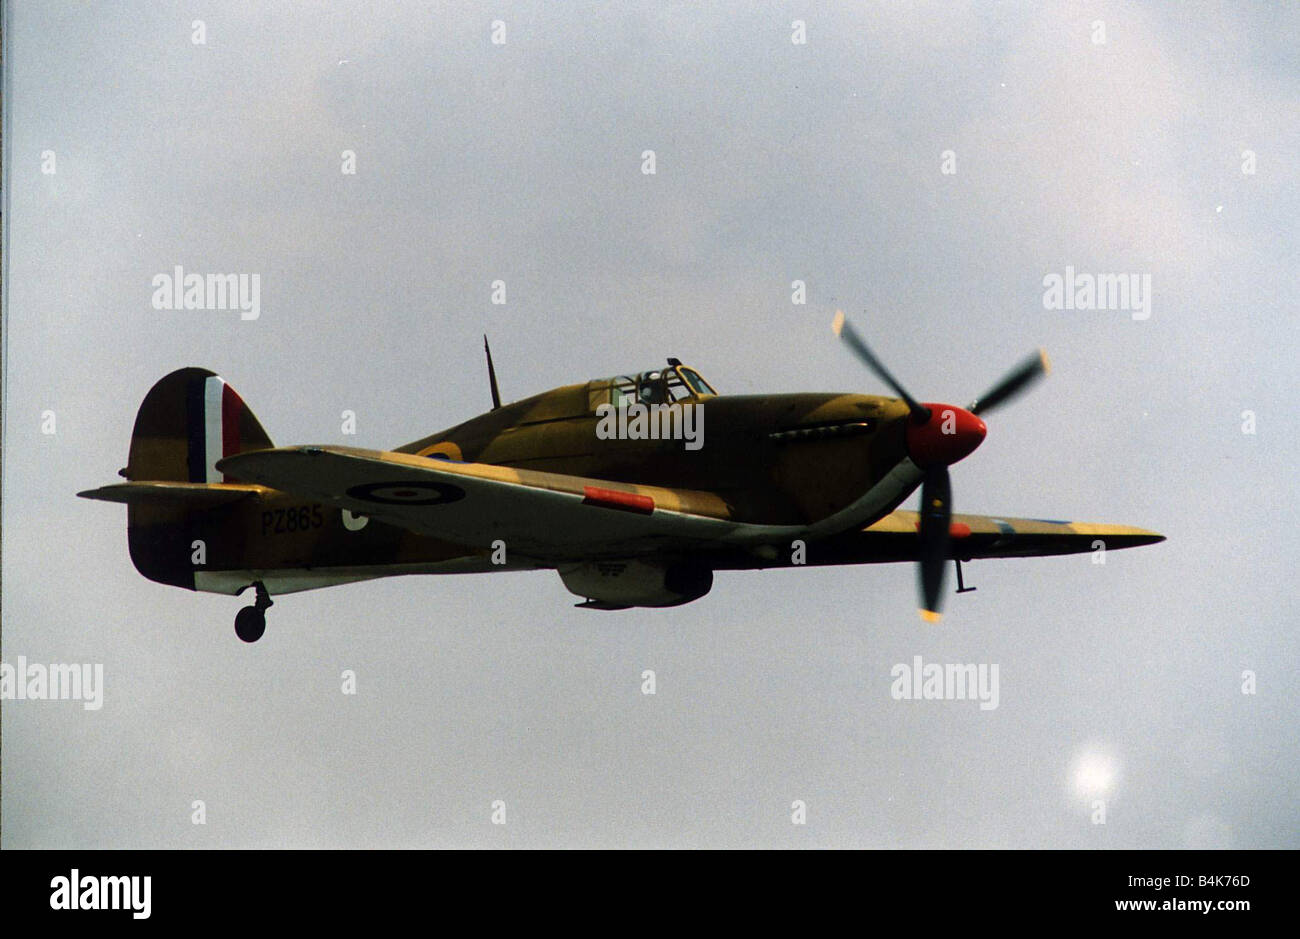 Air Aircraft Hawker Hurricane WW2 WW2 fighter aircraft that took part in the Battle of Britain owned and flown by - Stock Image